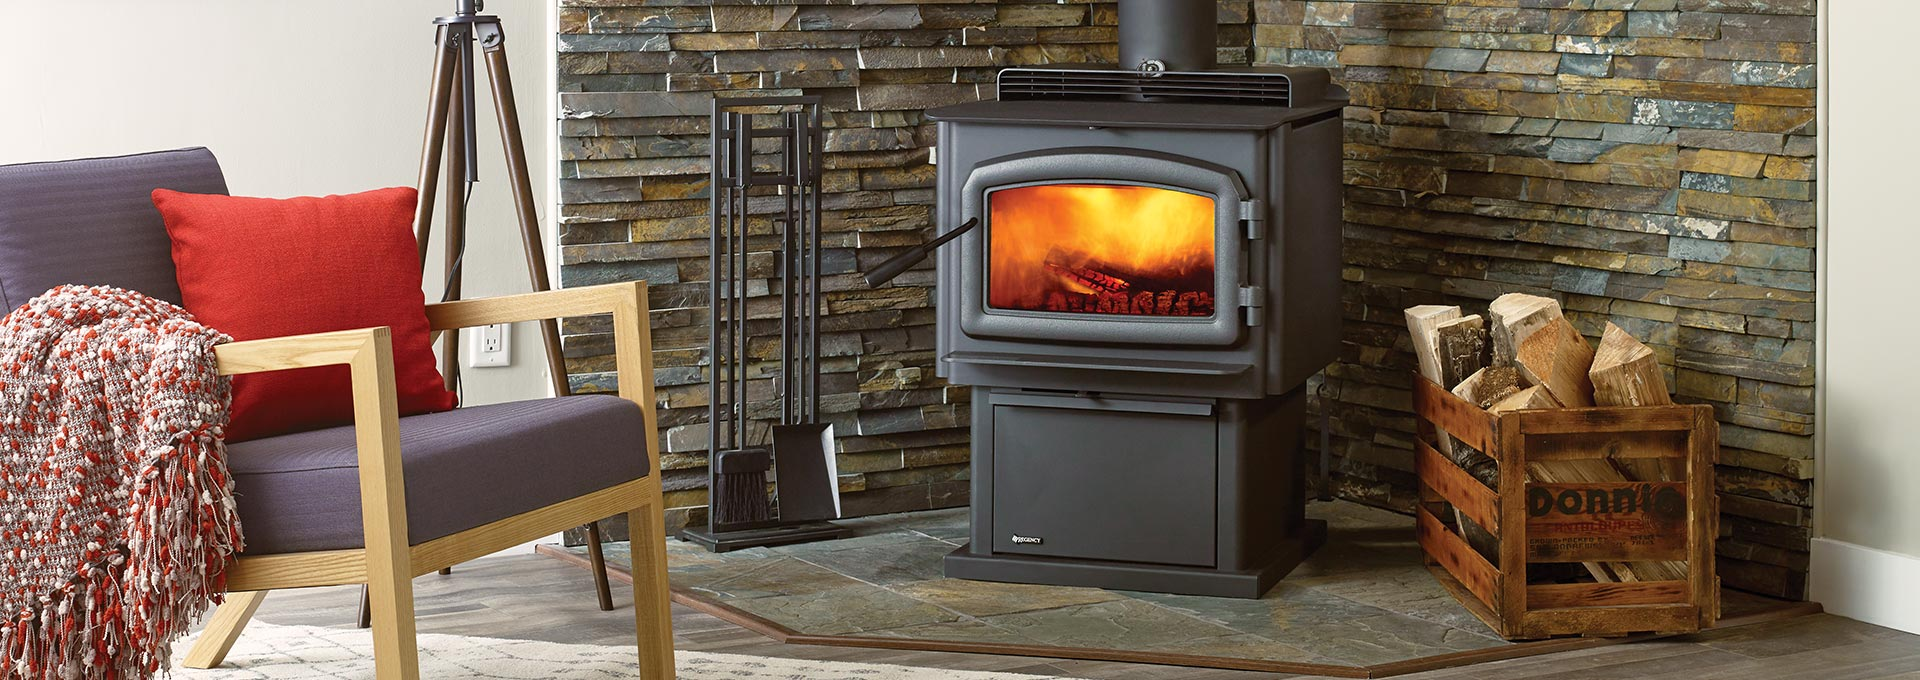 Catalytic vs Non-Catalytic Wood Stoves – Which Is Right for You?